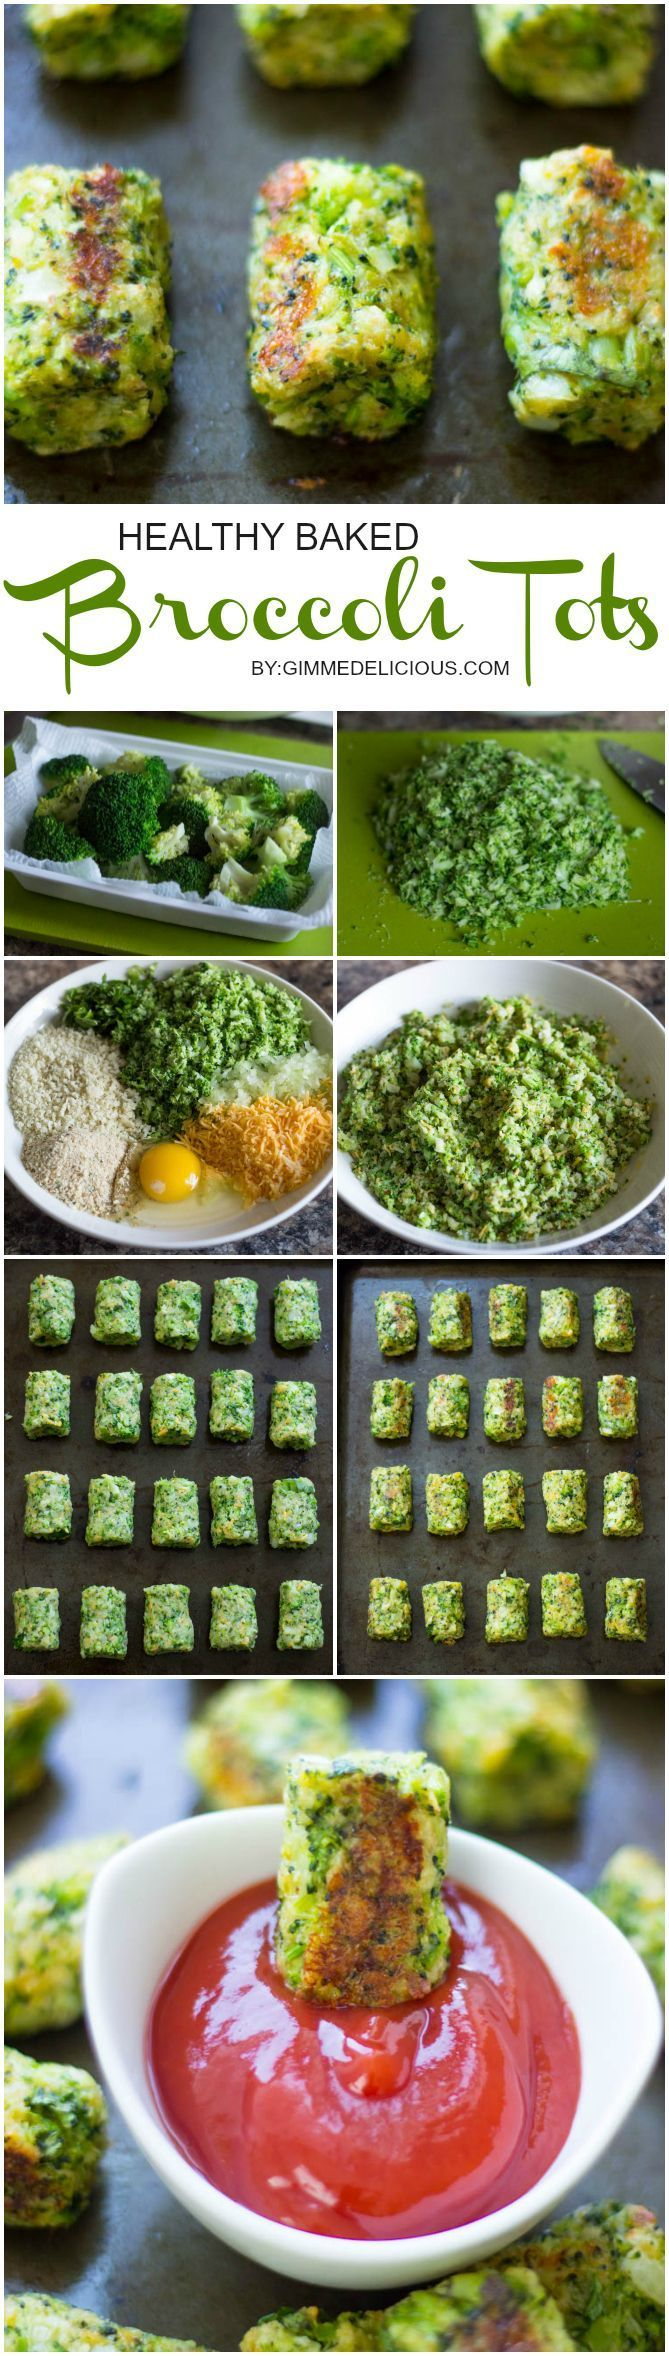 Healthy Baked Broccoli Tots xx What a great alternative!